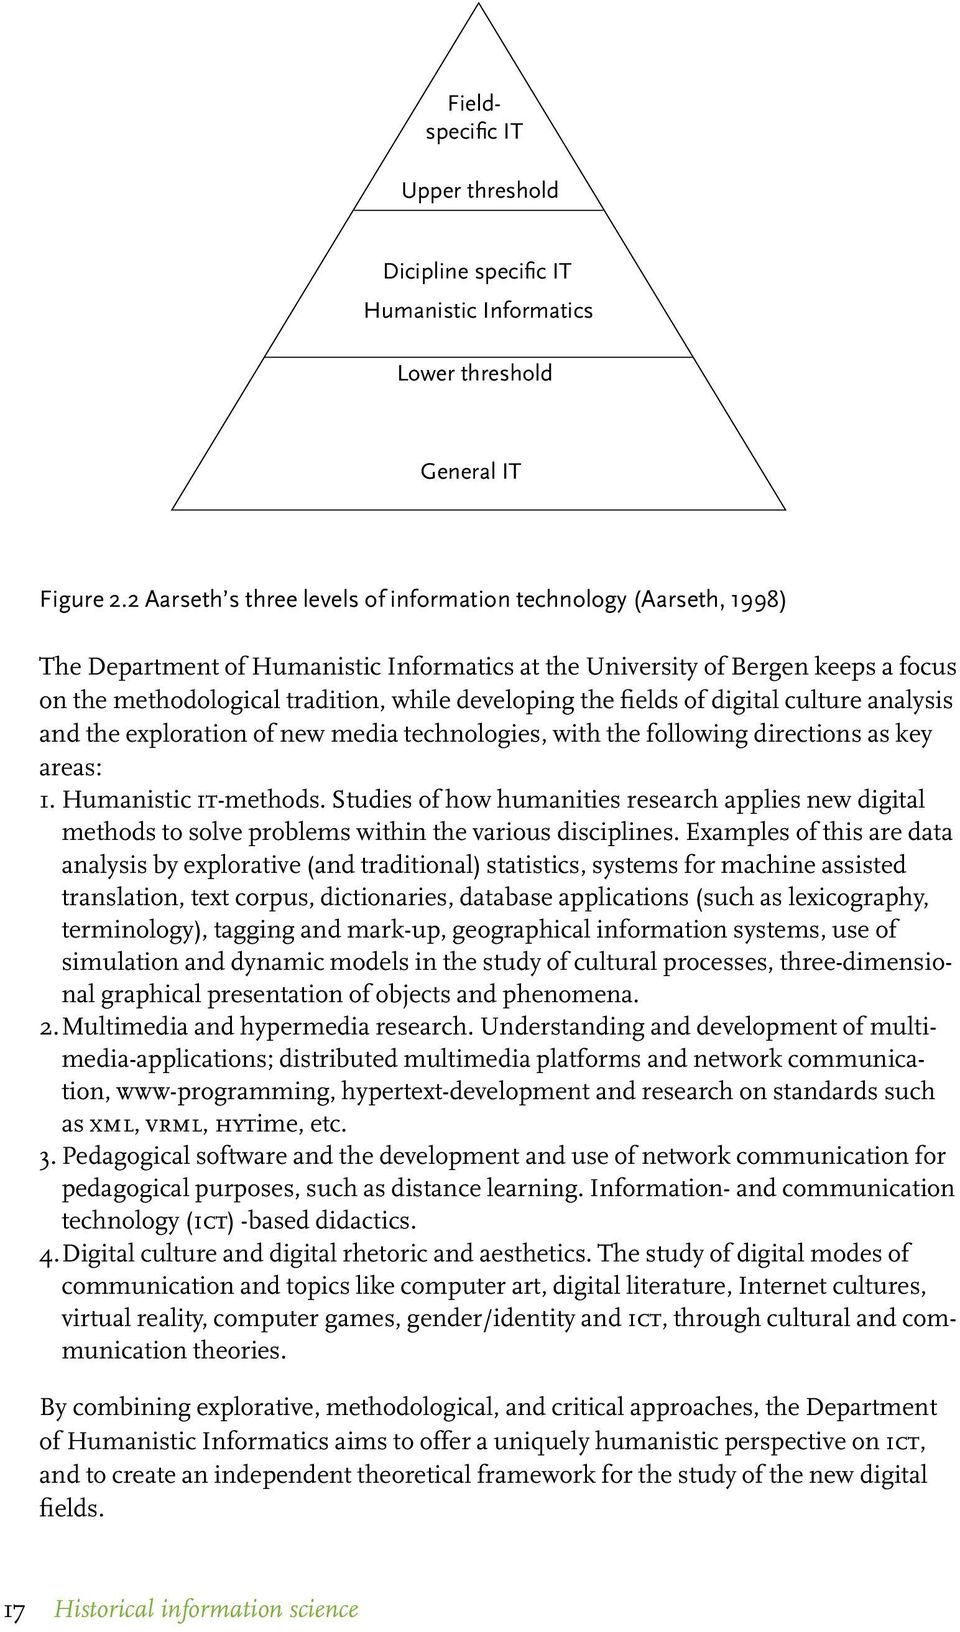 the fields of digital culture analysis and the exploration of new media technologies, with the following directions as key areas: 1. Humanistic it-methods.